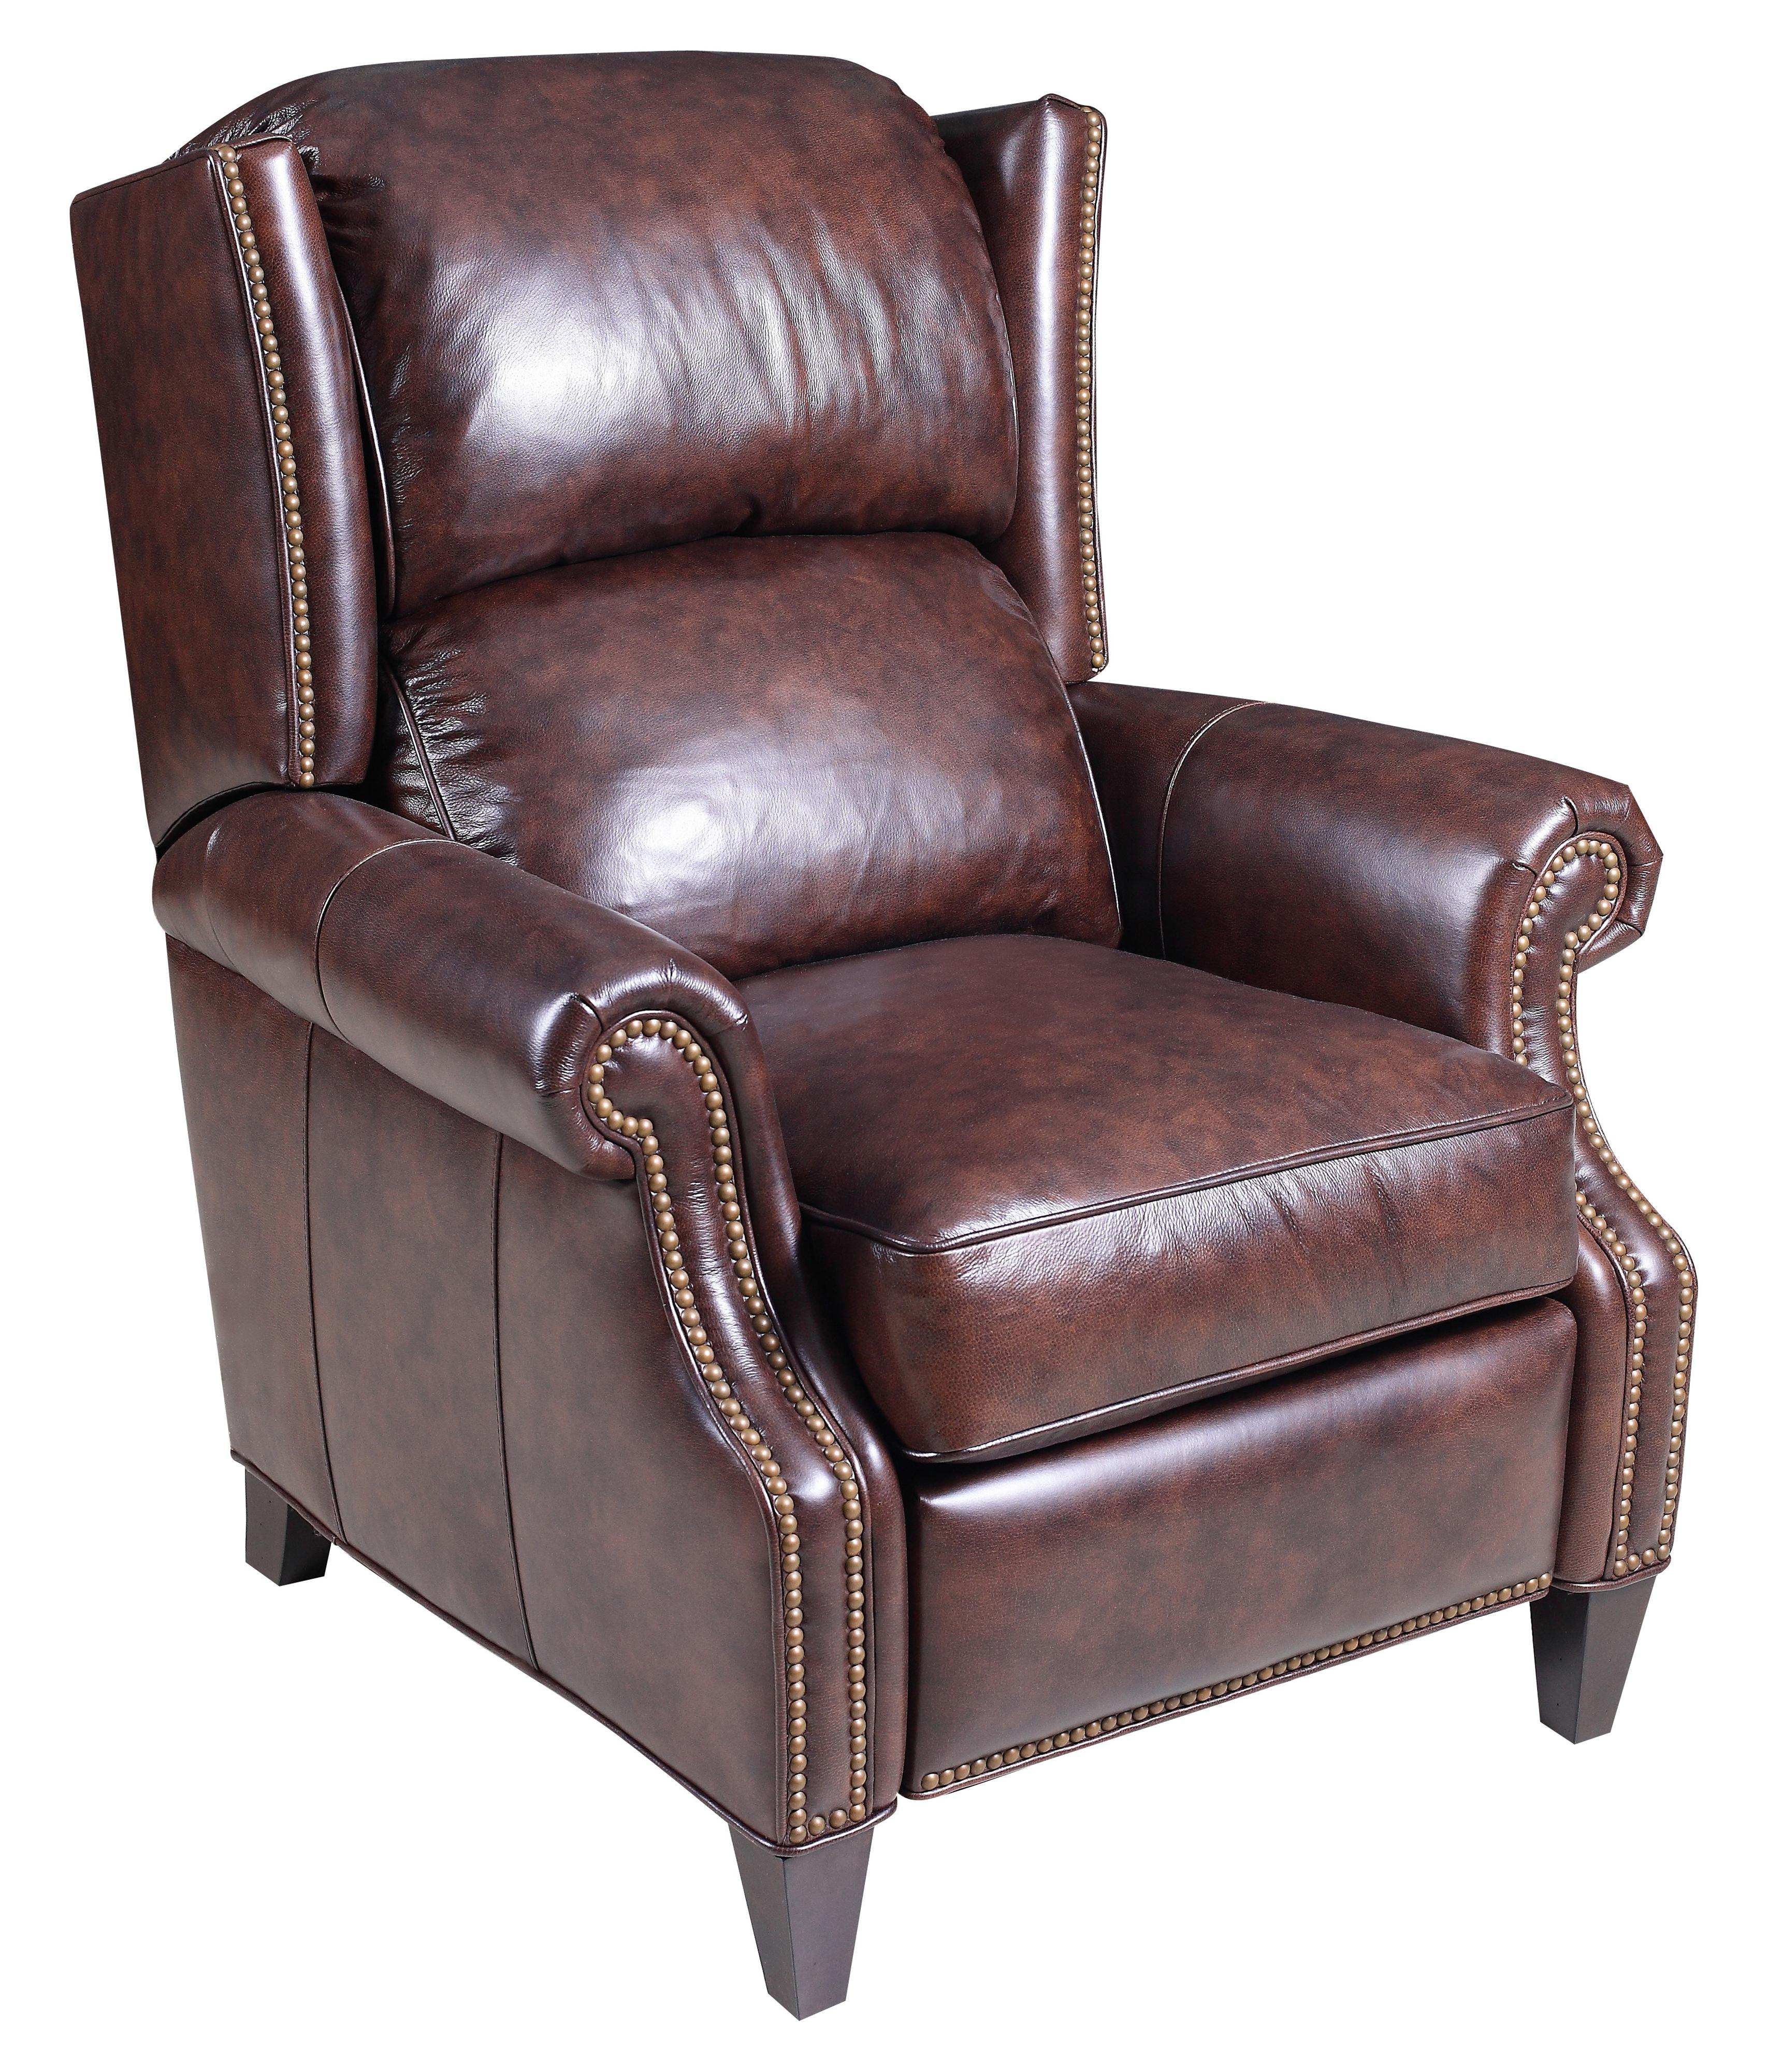 Reclining Chairs Transitional High Leg Recliner with Wing Back and Nailhead Studs by Hooker Furniture  sc 1 st  Furniture Dealer Locator - Find your furniture & Hooker Furniture Reclining Chairs Transitional High Leg Recliner ... islam-shia.org